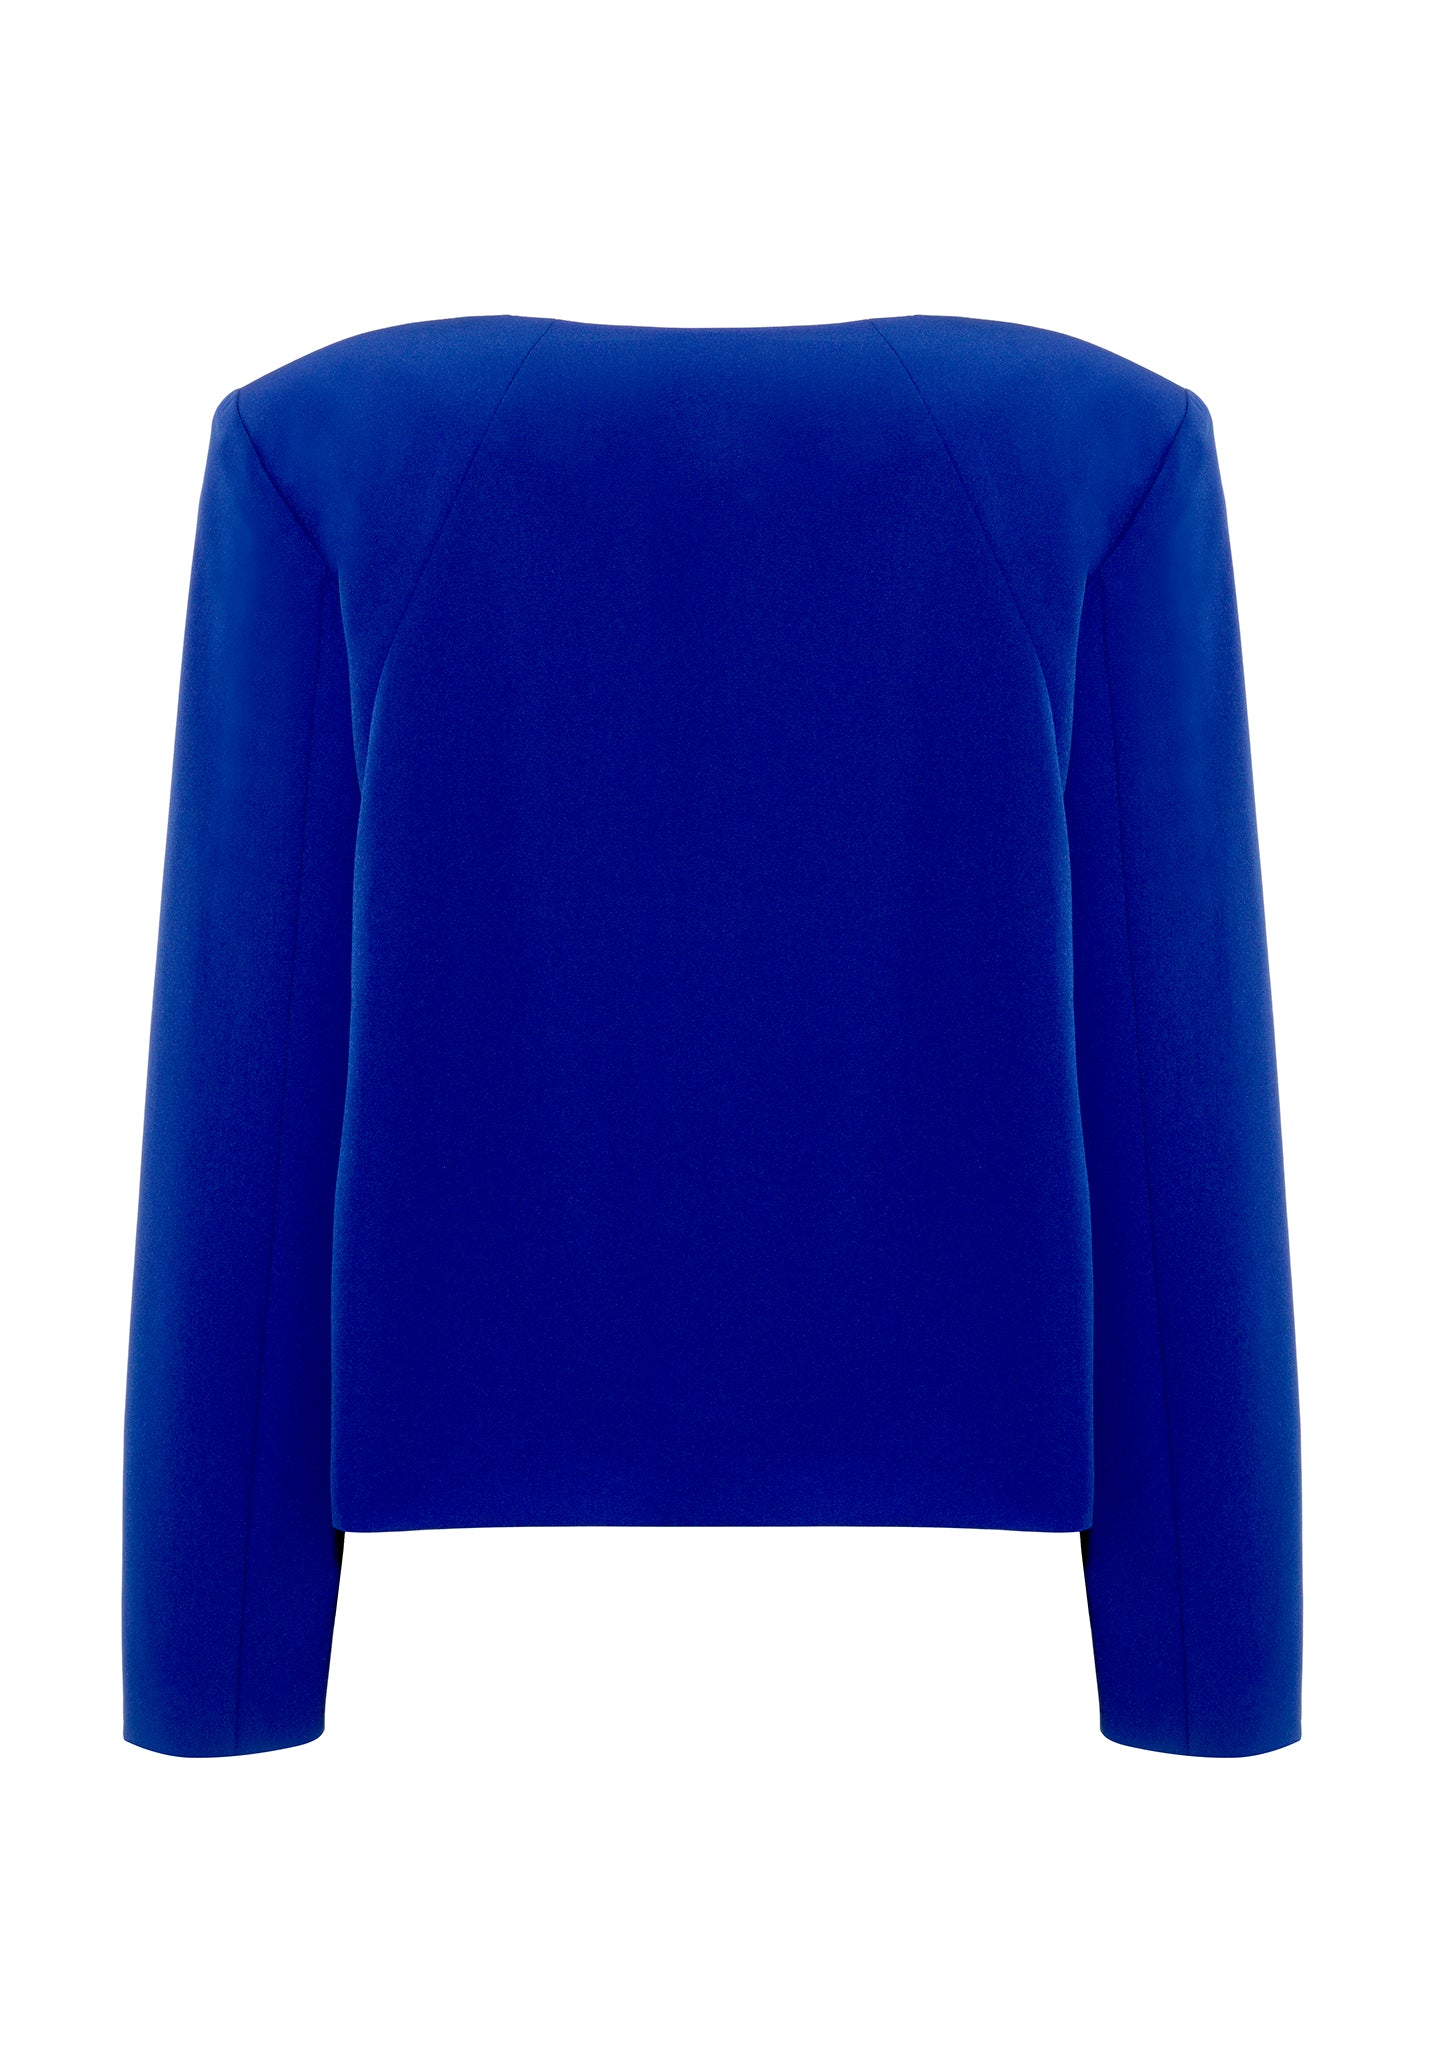 Slim-fit, collarless bold blue jacket